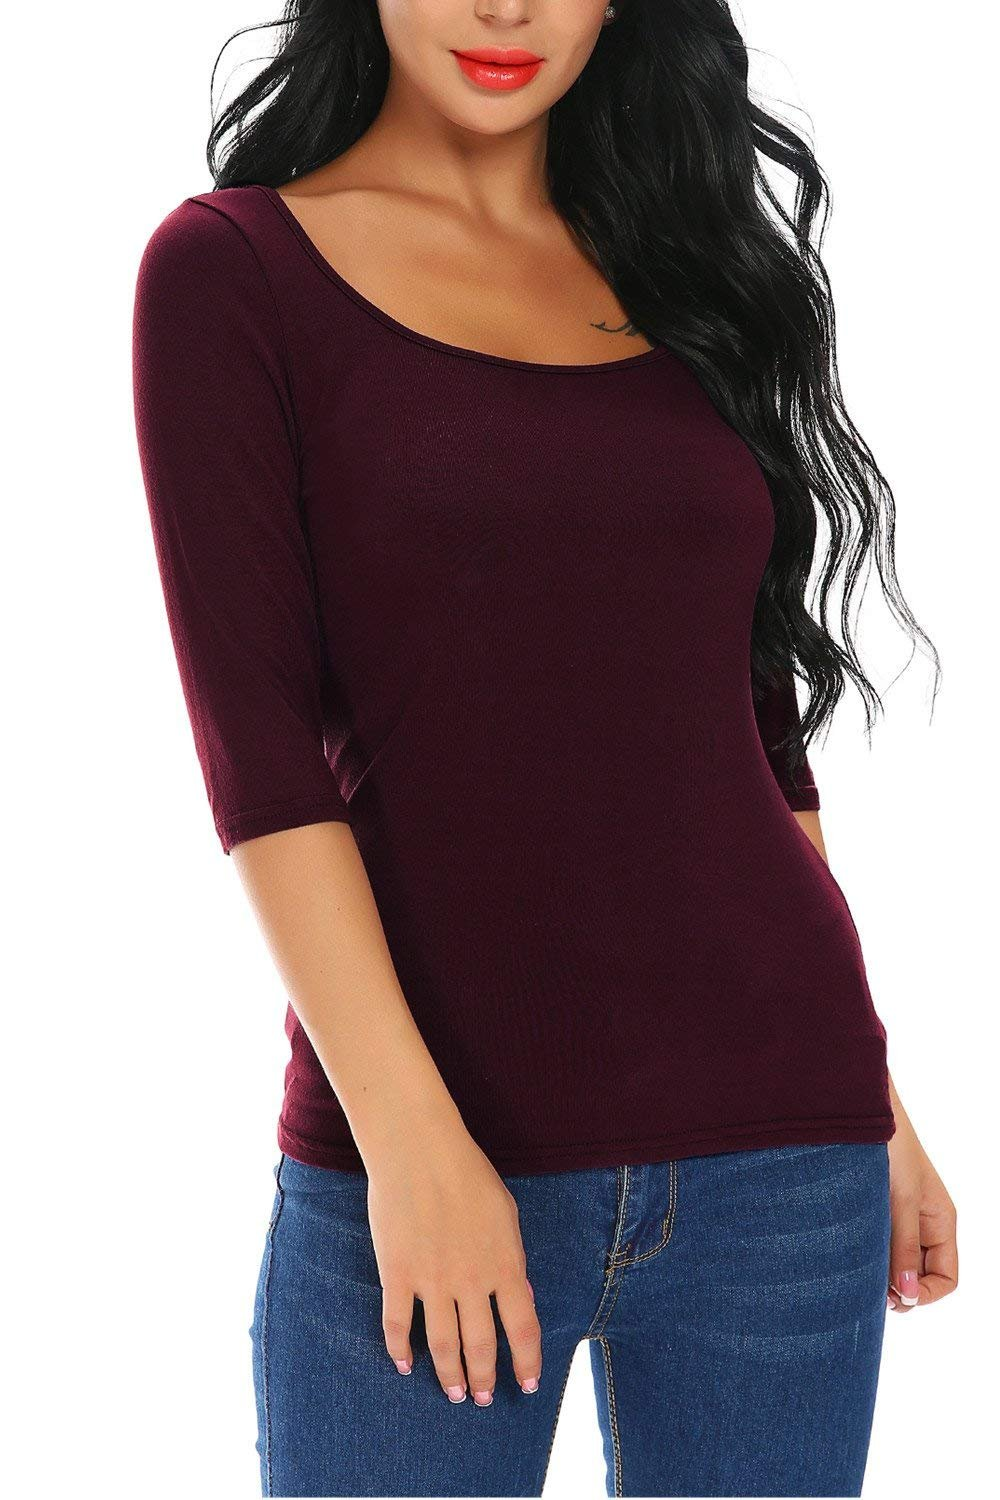 FISOUL Womens 3/4 Sleeve Tops Square Neck Slim Fit Basic Cotton Tee Shirts (Wine Red M) by FISOUL (Image #1)